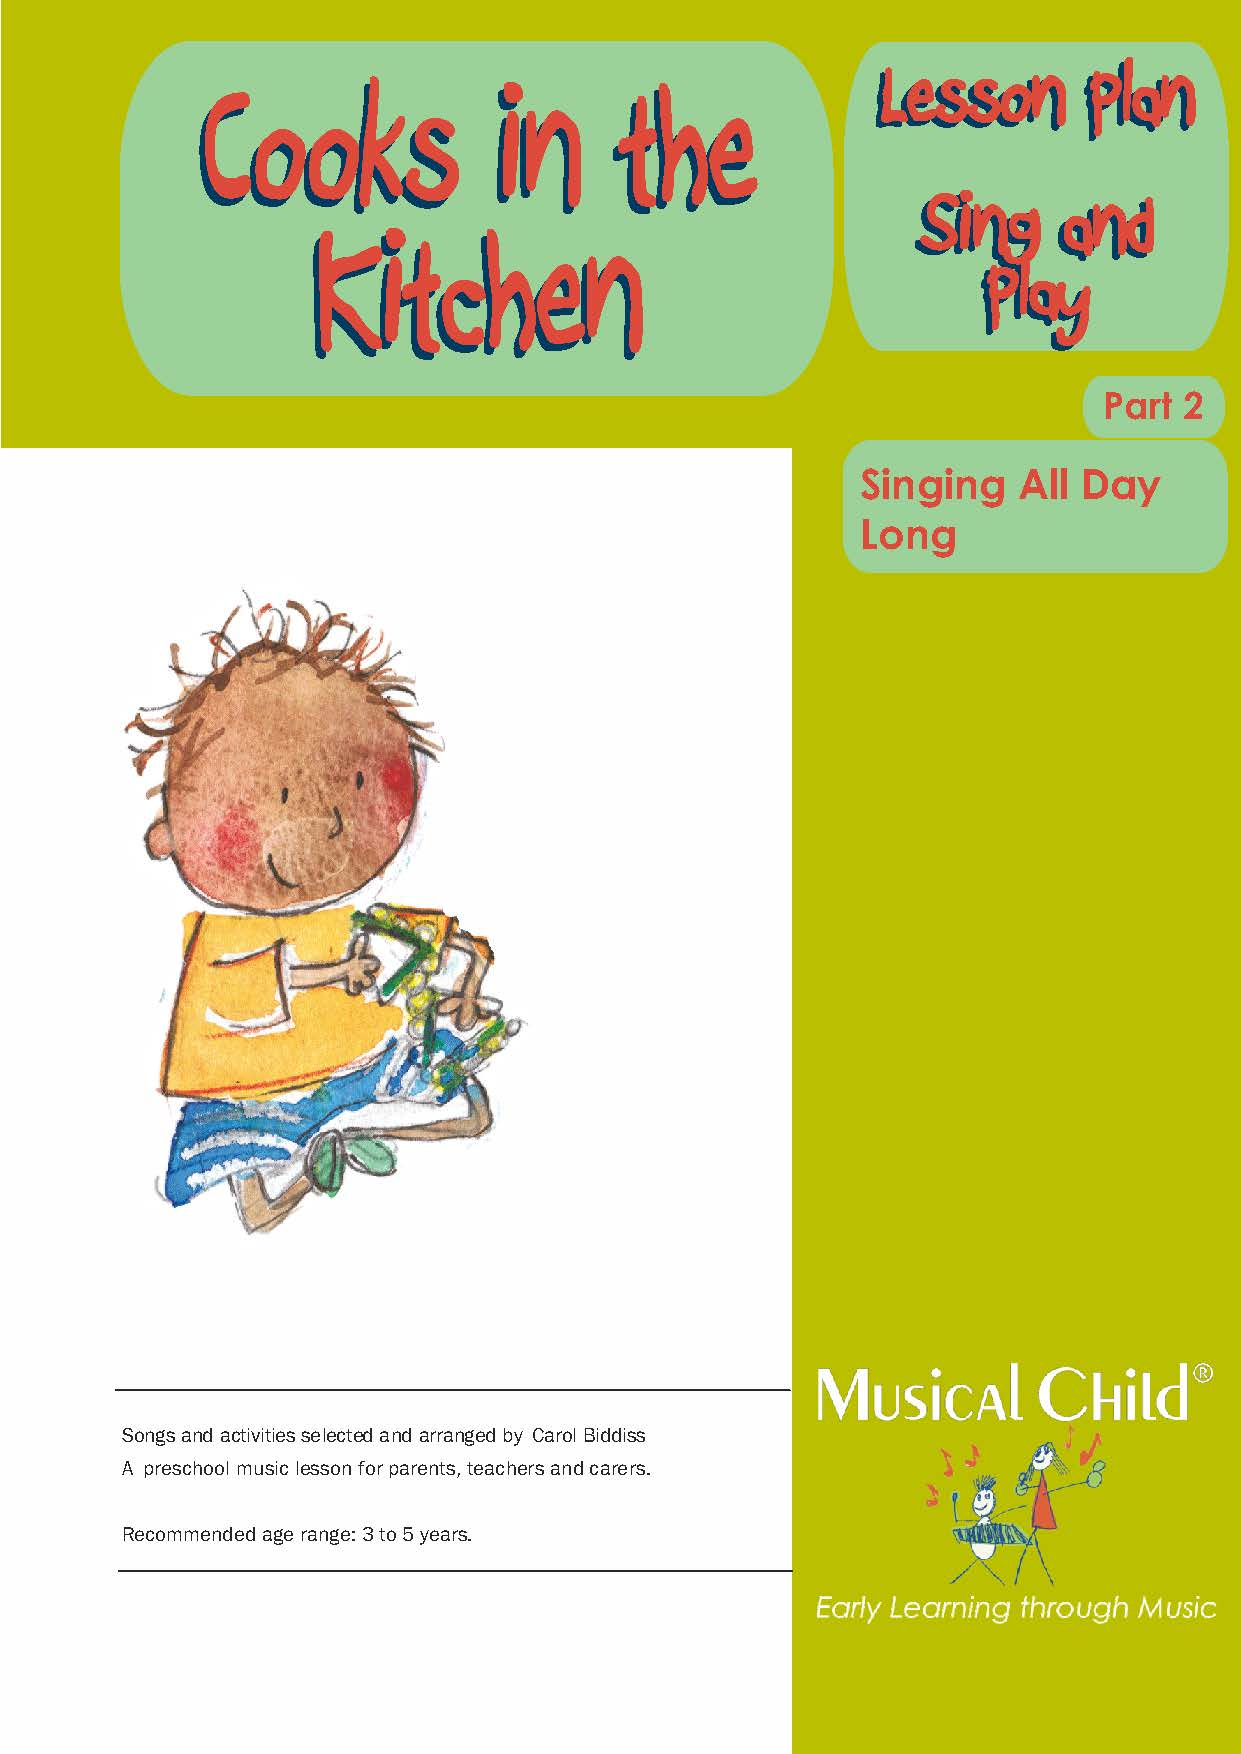 Cooks In The Kitchen Preschool Music Lesson Plan 2 Download